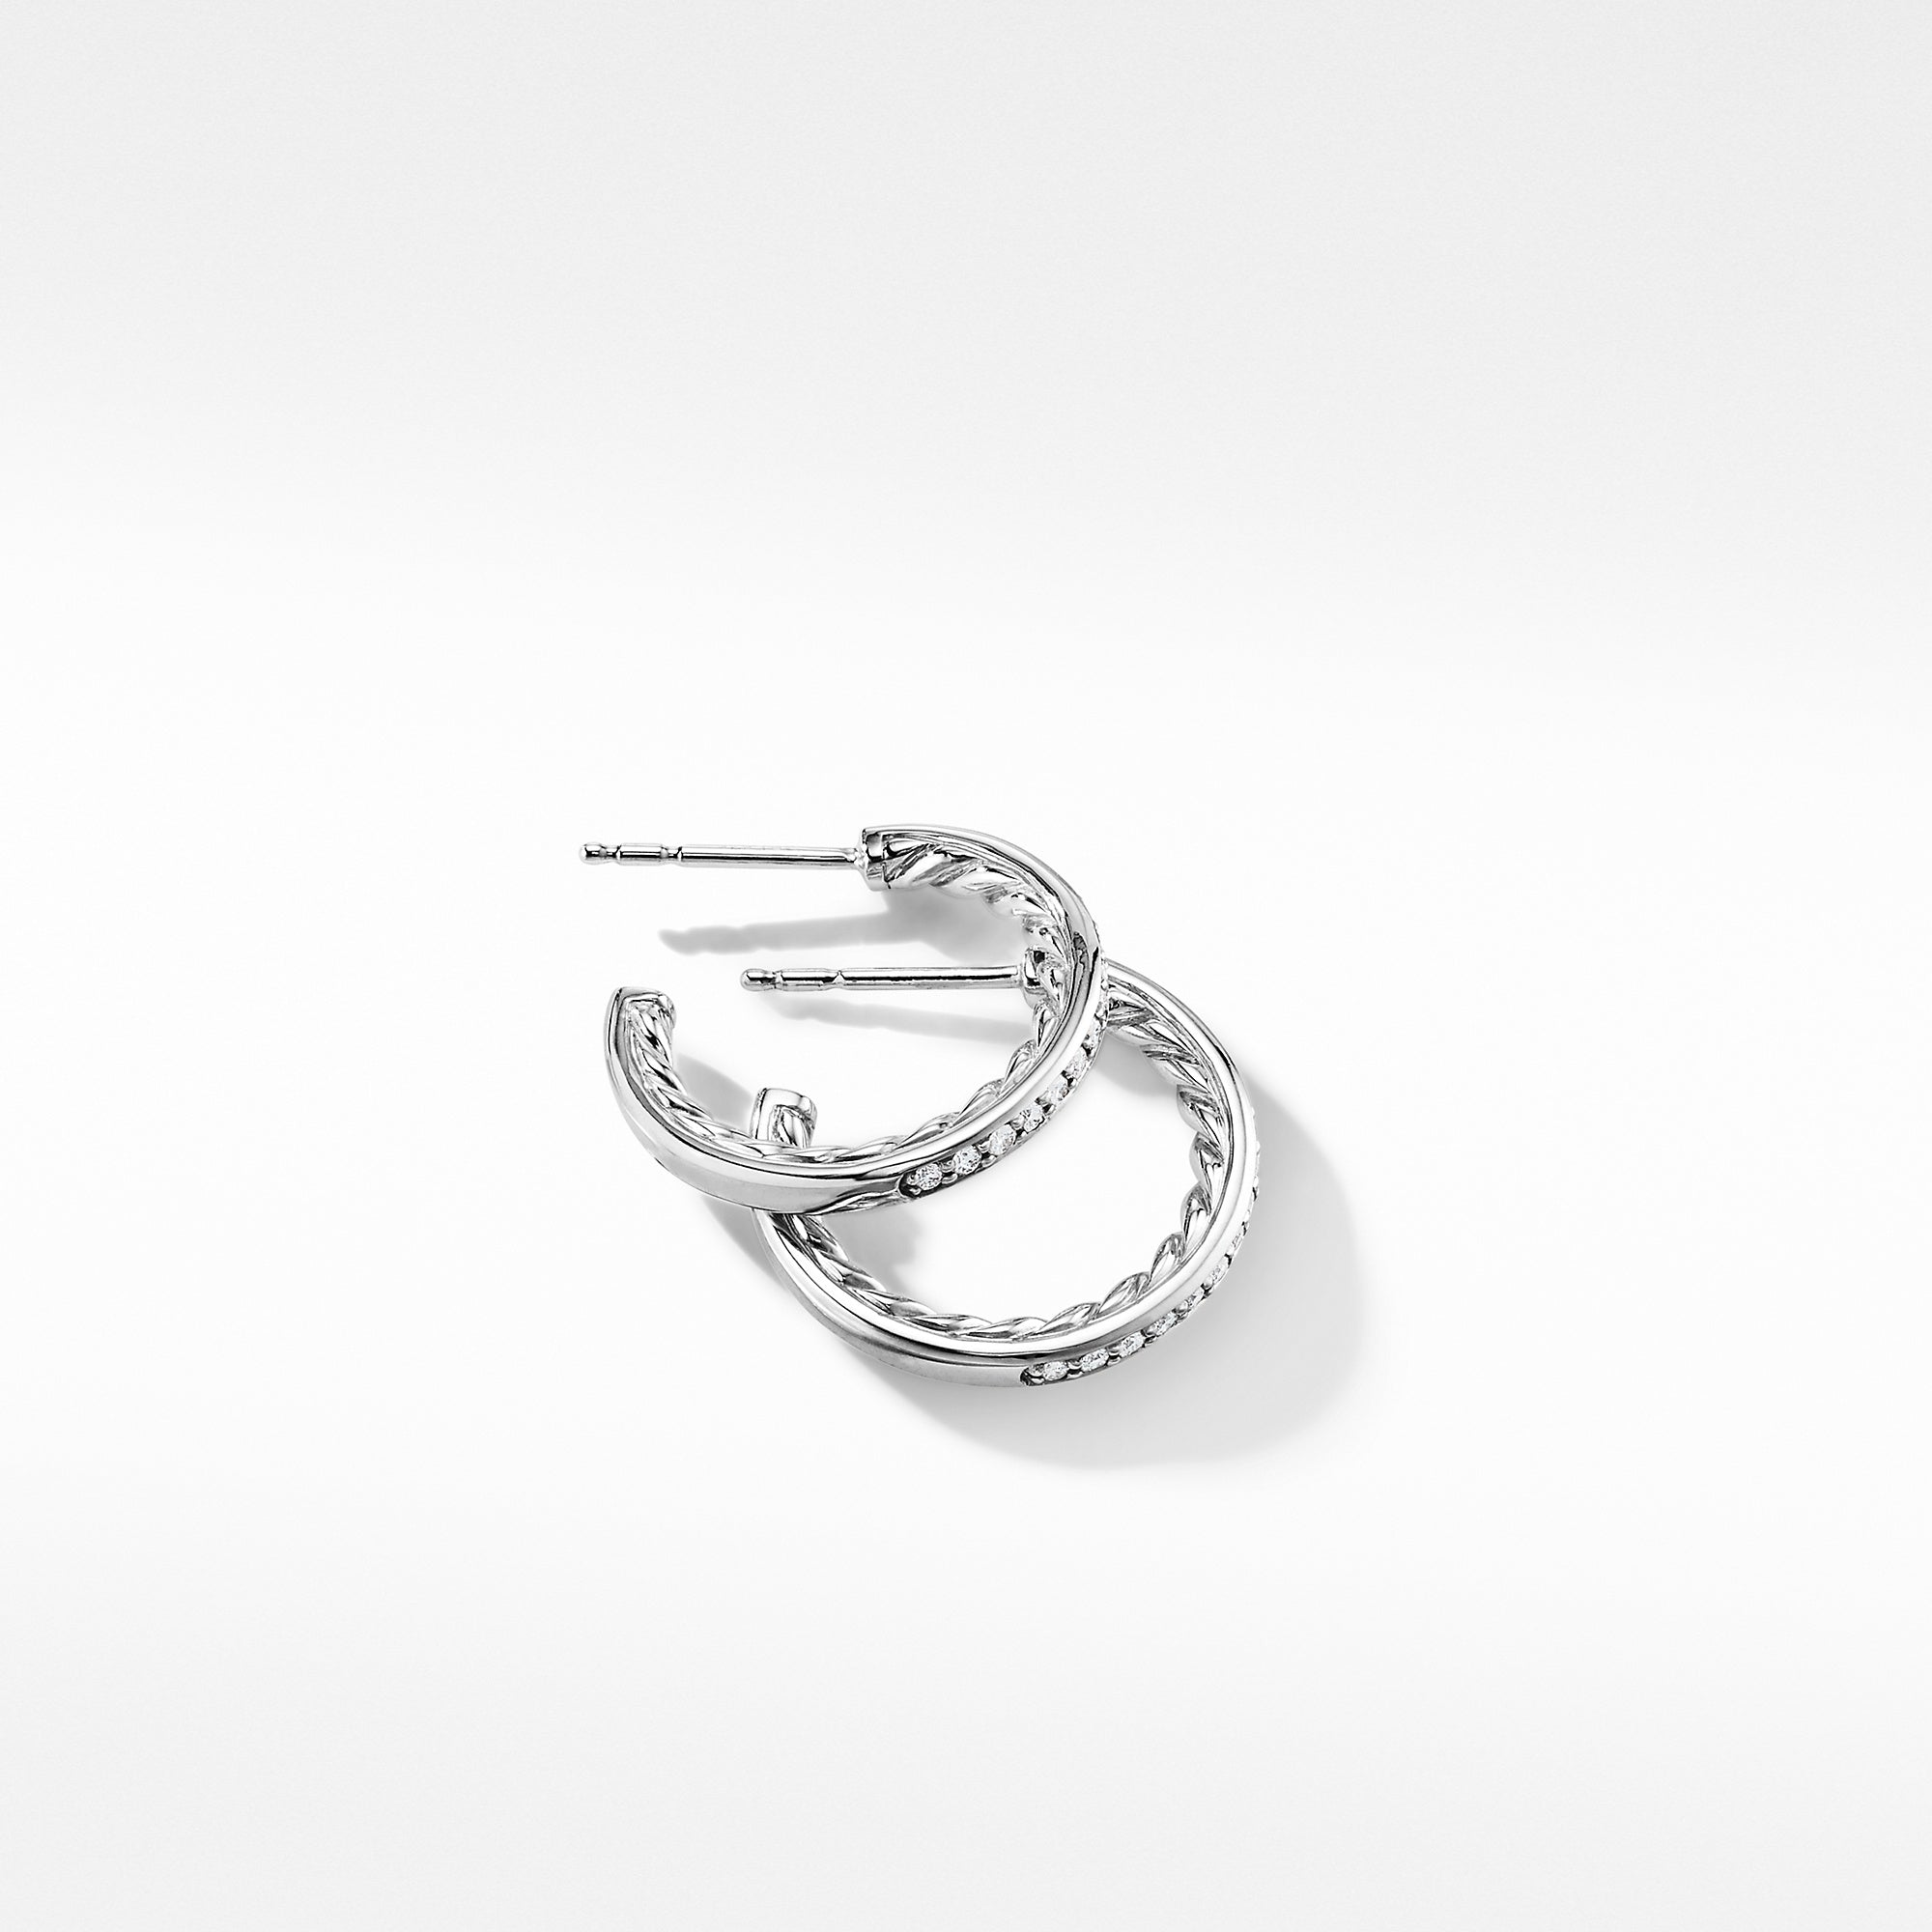 Extra-Small Hoop Earrings in with Pavé Diamonds